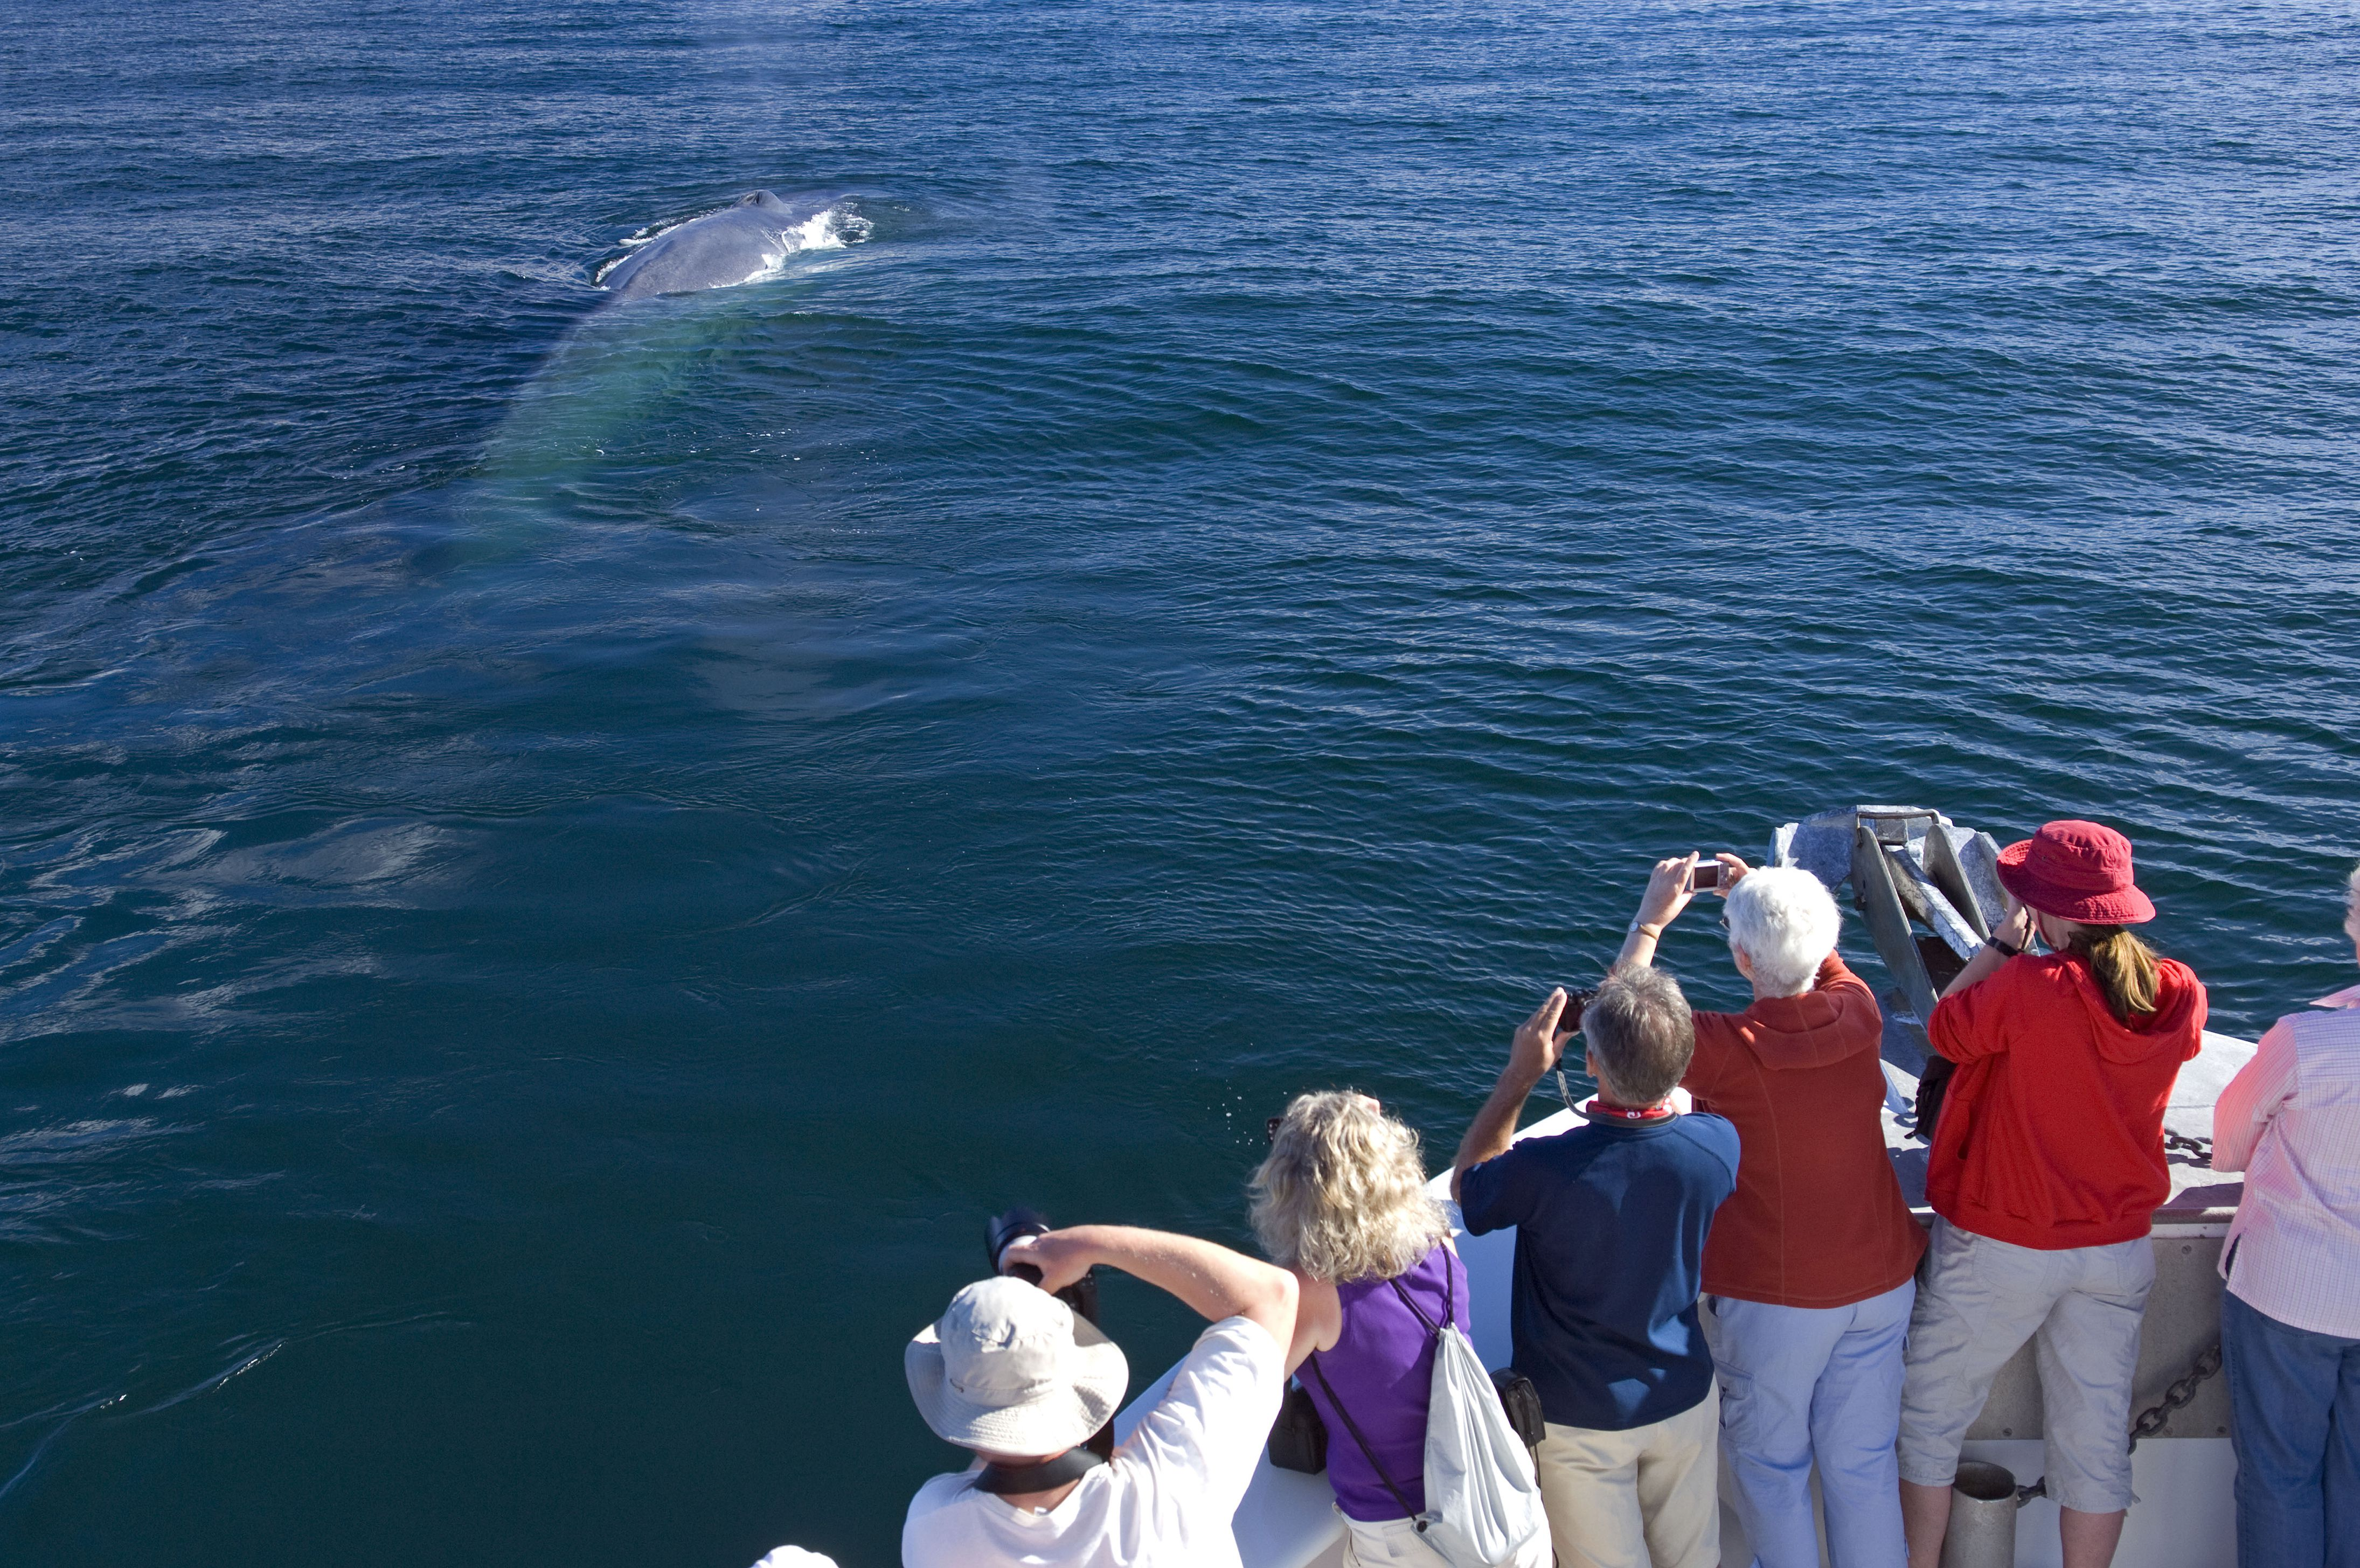 Whale watching tour and a blue whale